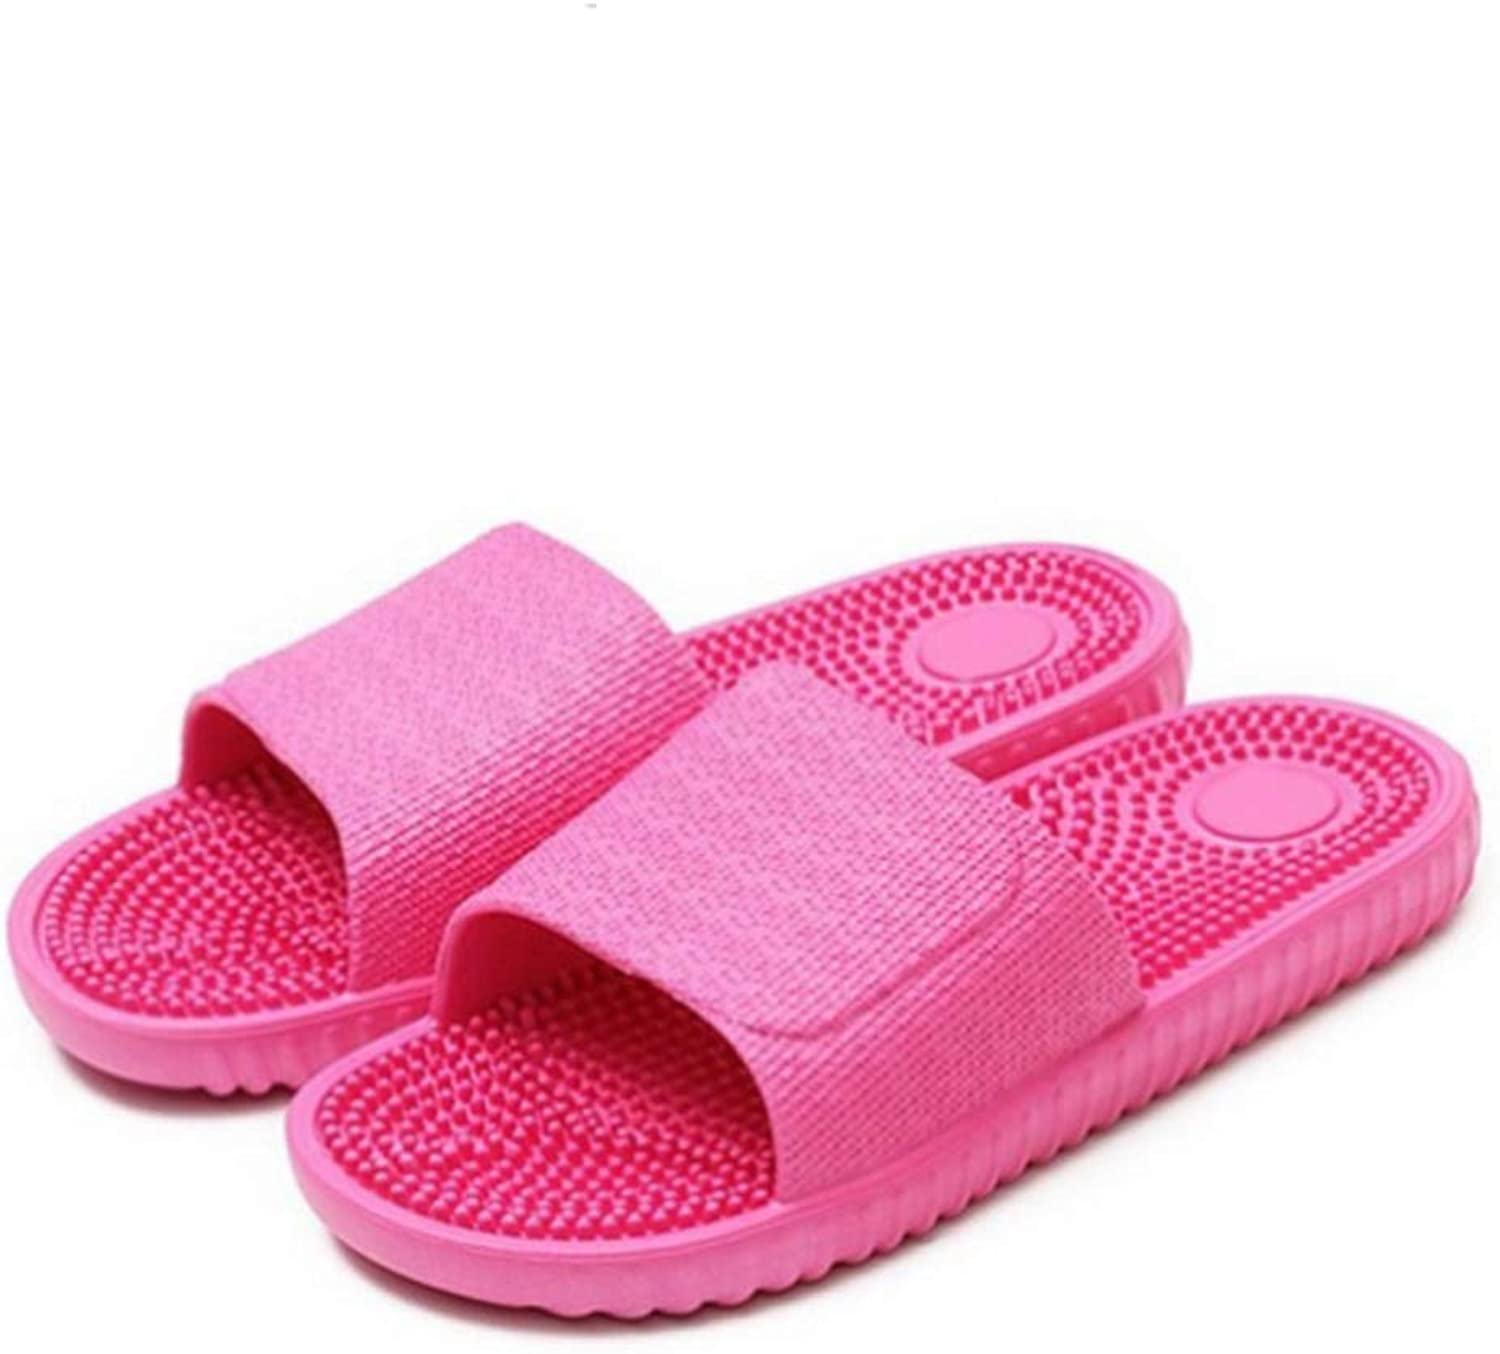 Women's Bathroom Slippers Candy color Indoor Massage Lightweight Solid Home Non-Slip Beach shoes